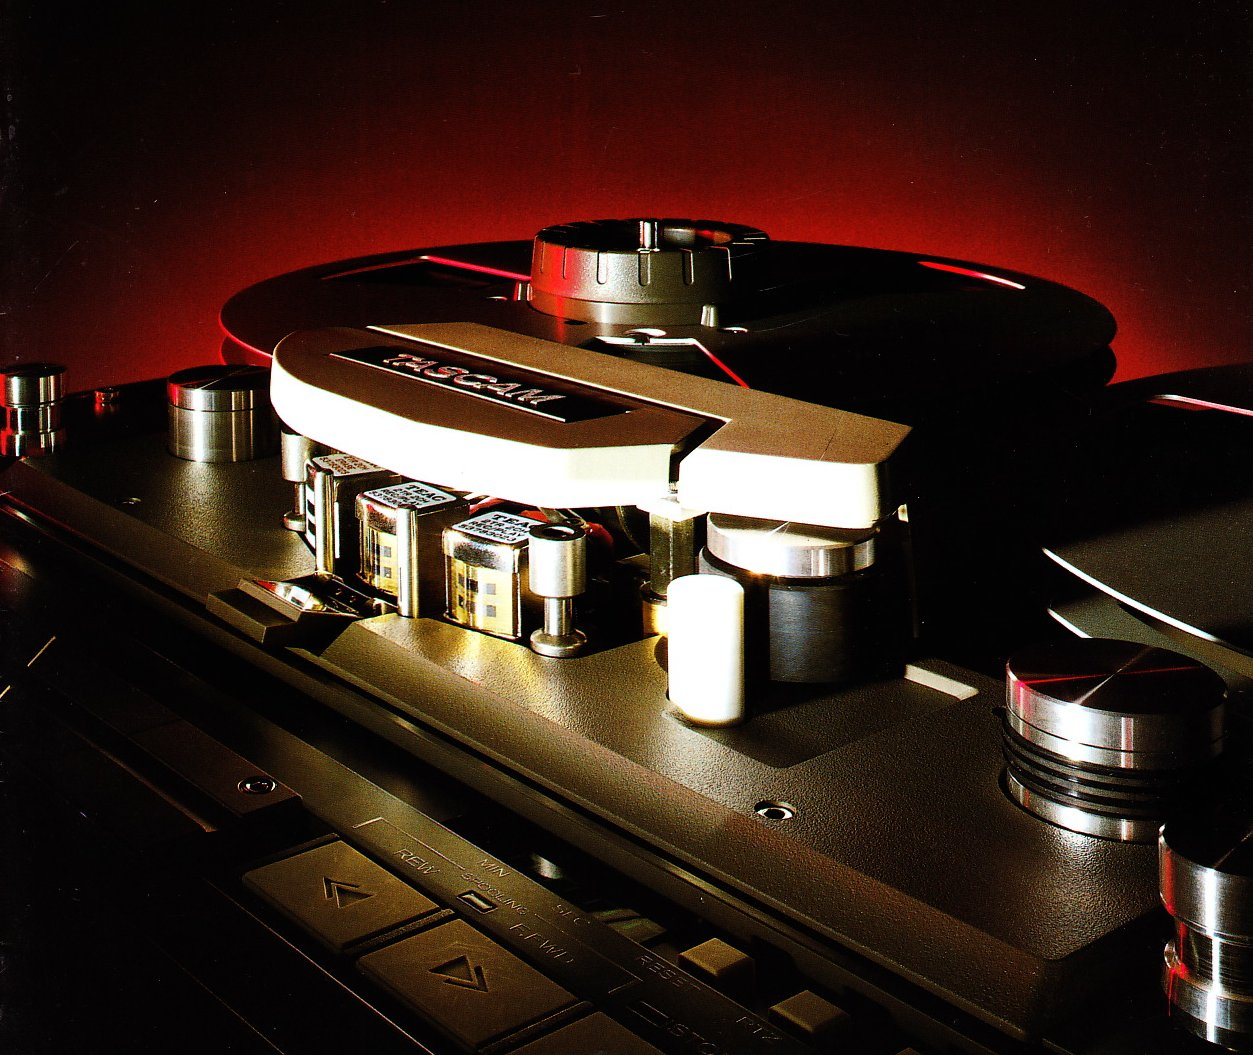 The Tascam Series 40 Tape Machines Of 1980s Preservation Sound Best Wiring Harness Download